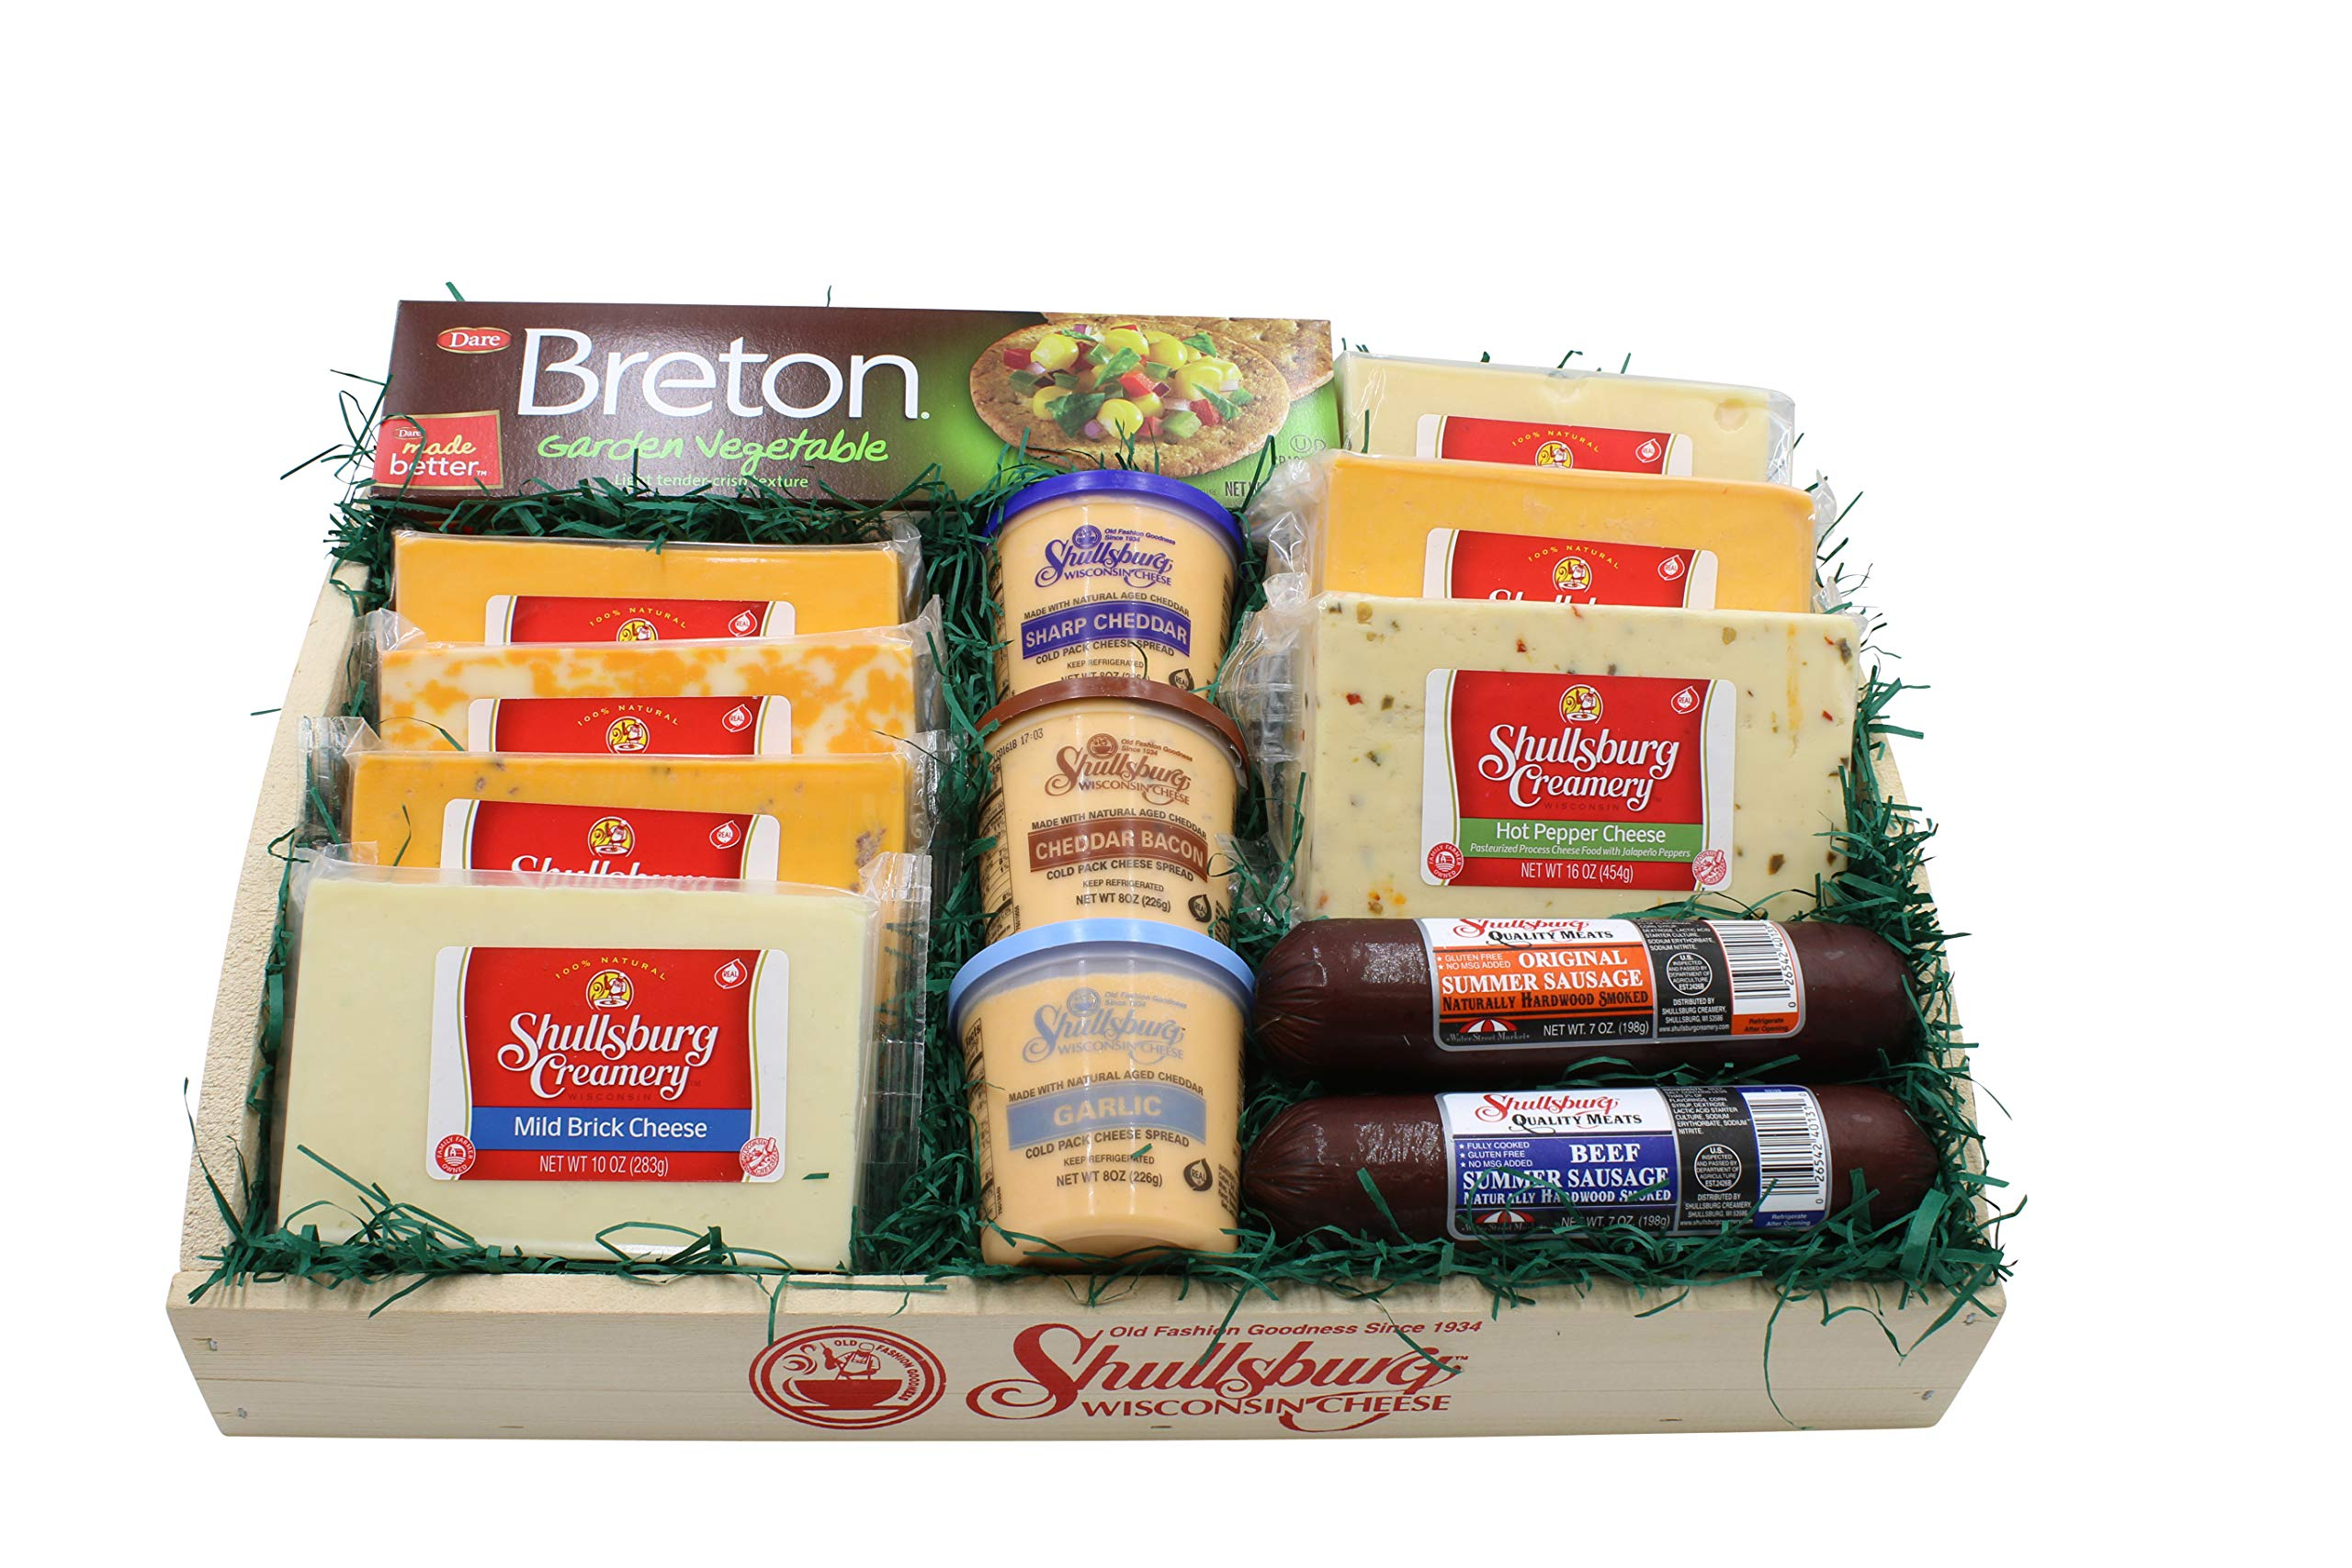 Shullsburg Creamery Family Size Cheese and Sausage Tray